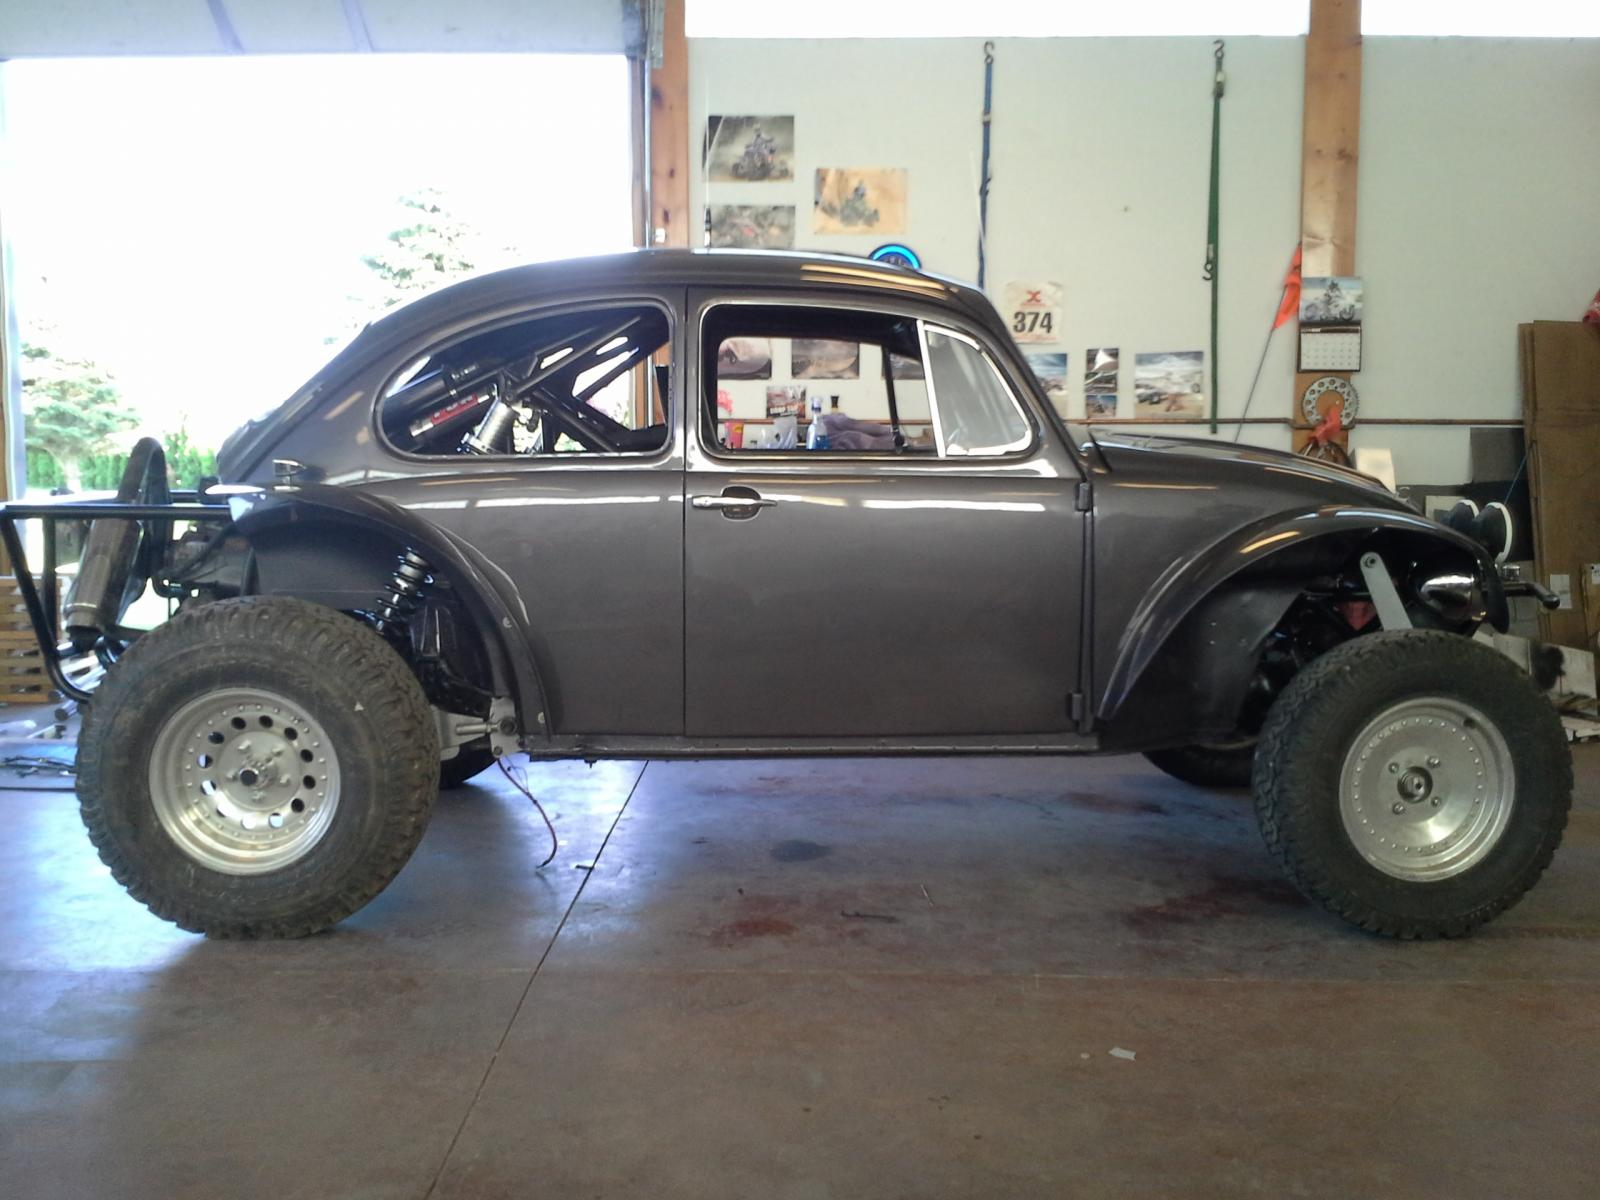 /Users/maurice/Documents/Vehicles/Baja Bug/Bodywork/1217381.jpg